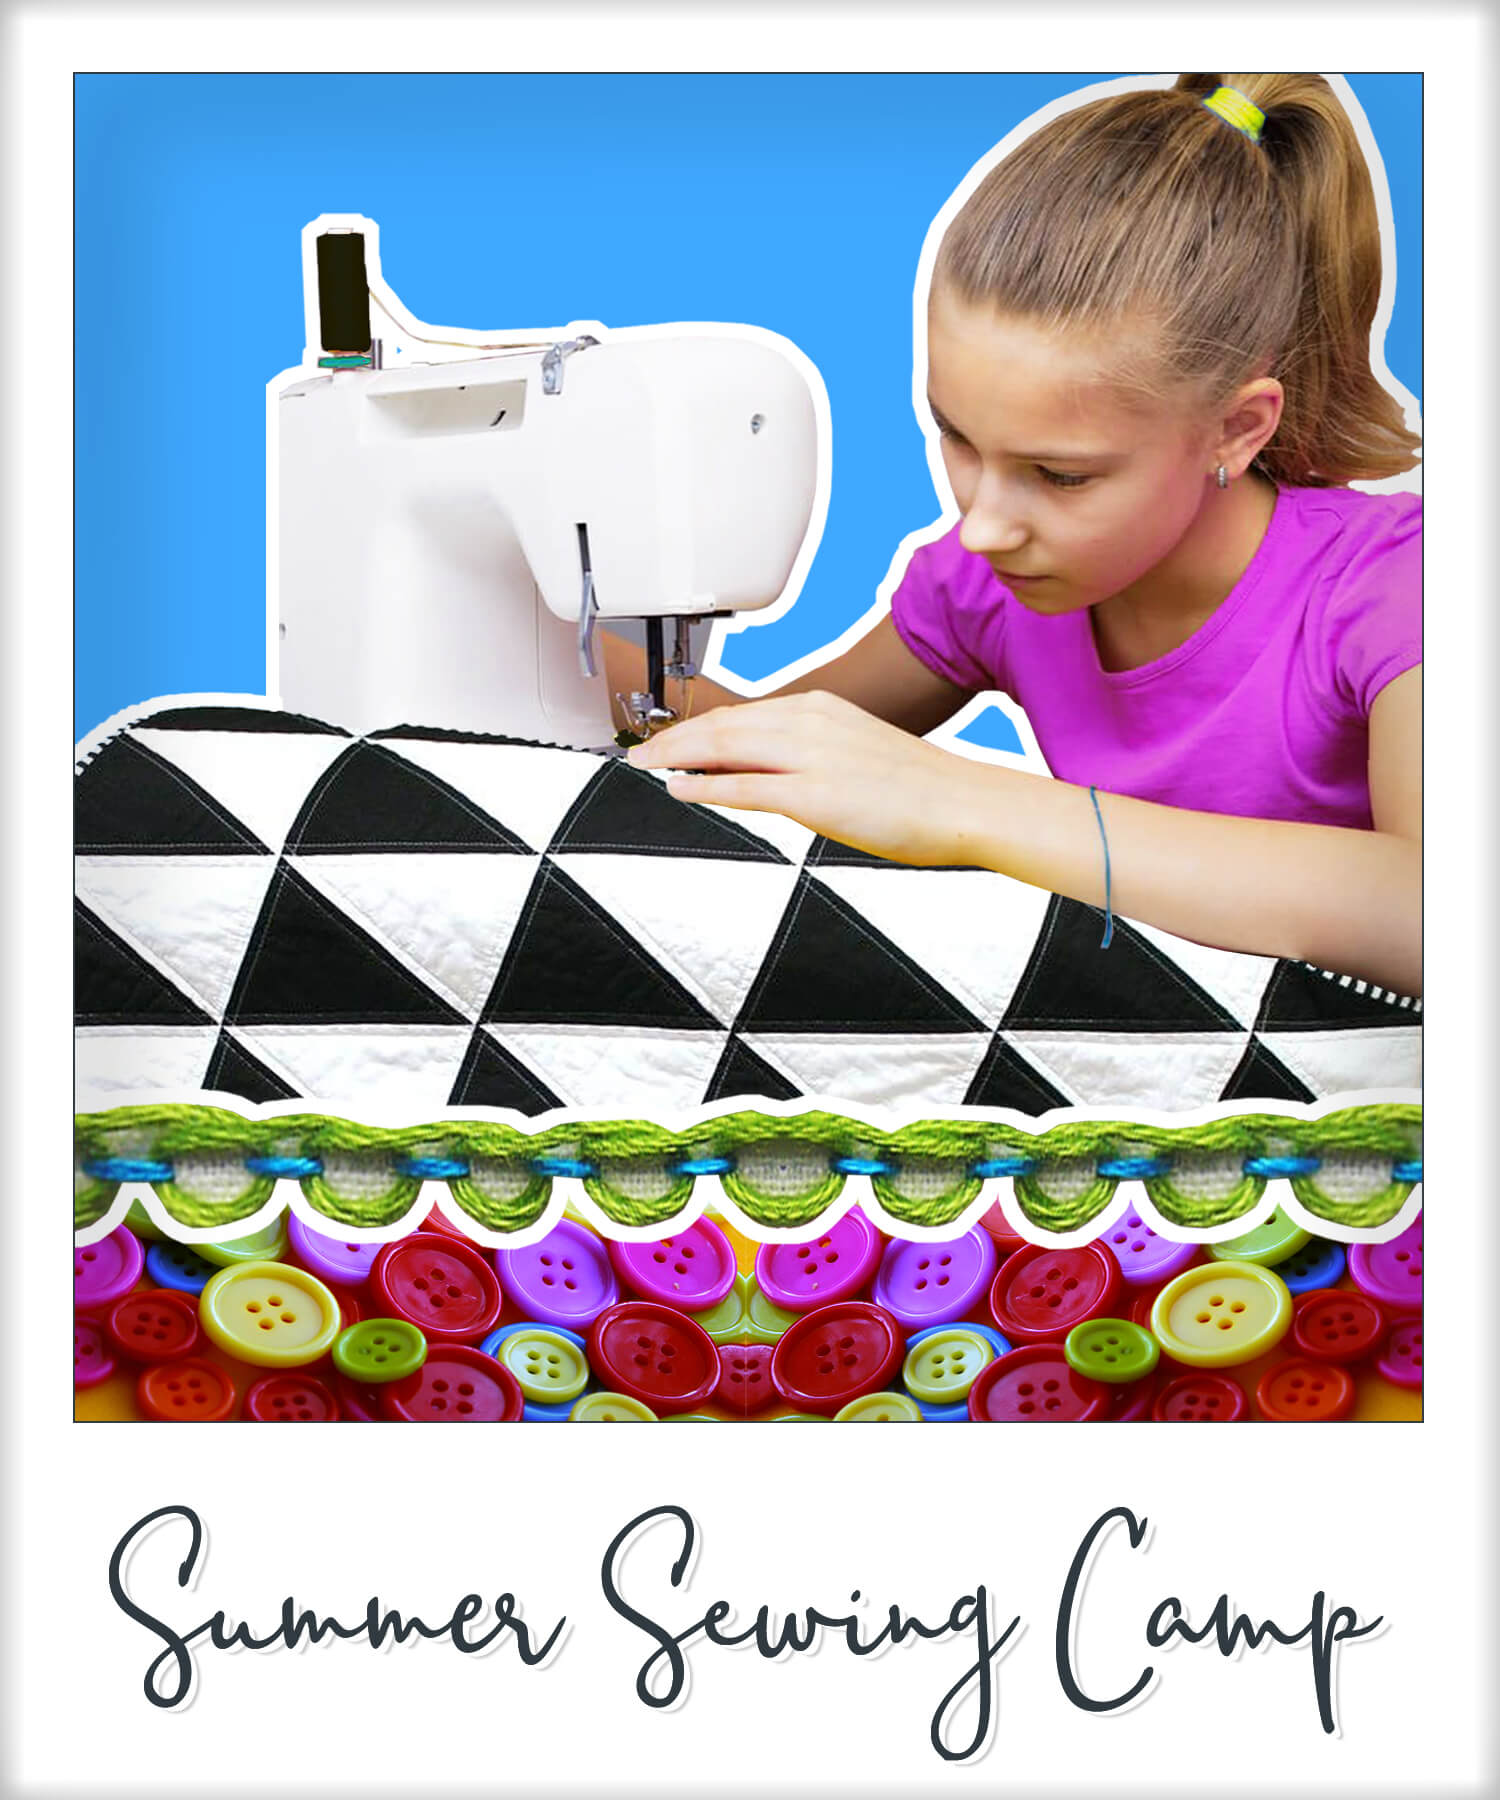 Sewing Class Image - Summer Sewing Camp